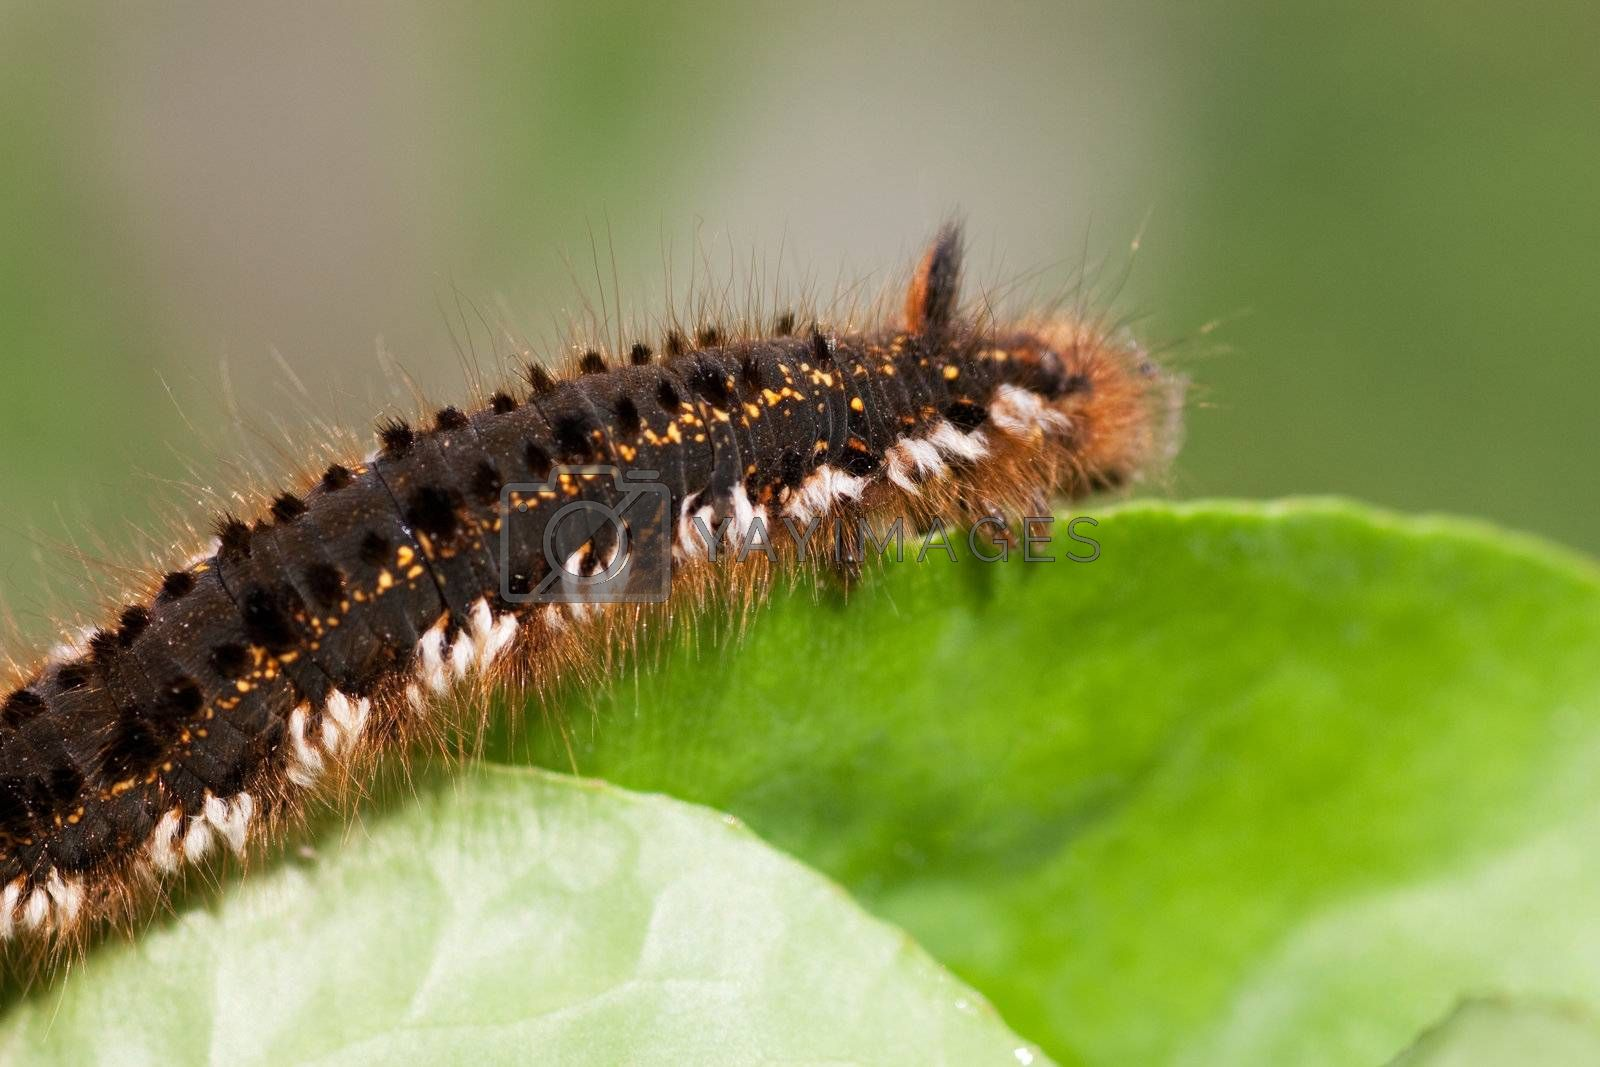 Macro view of hairy caterpillar on a leaf